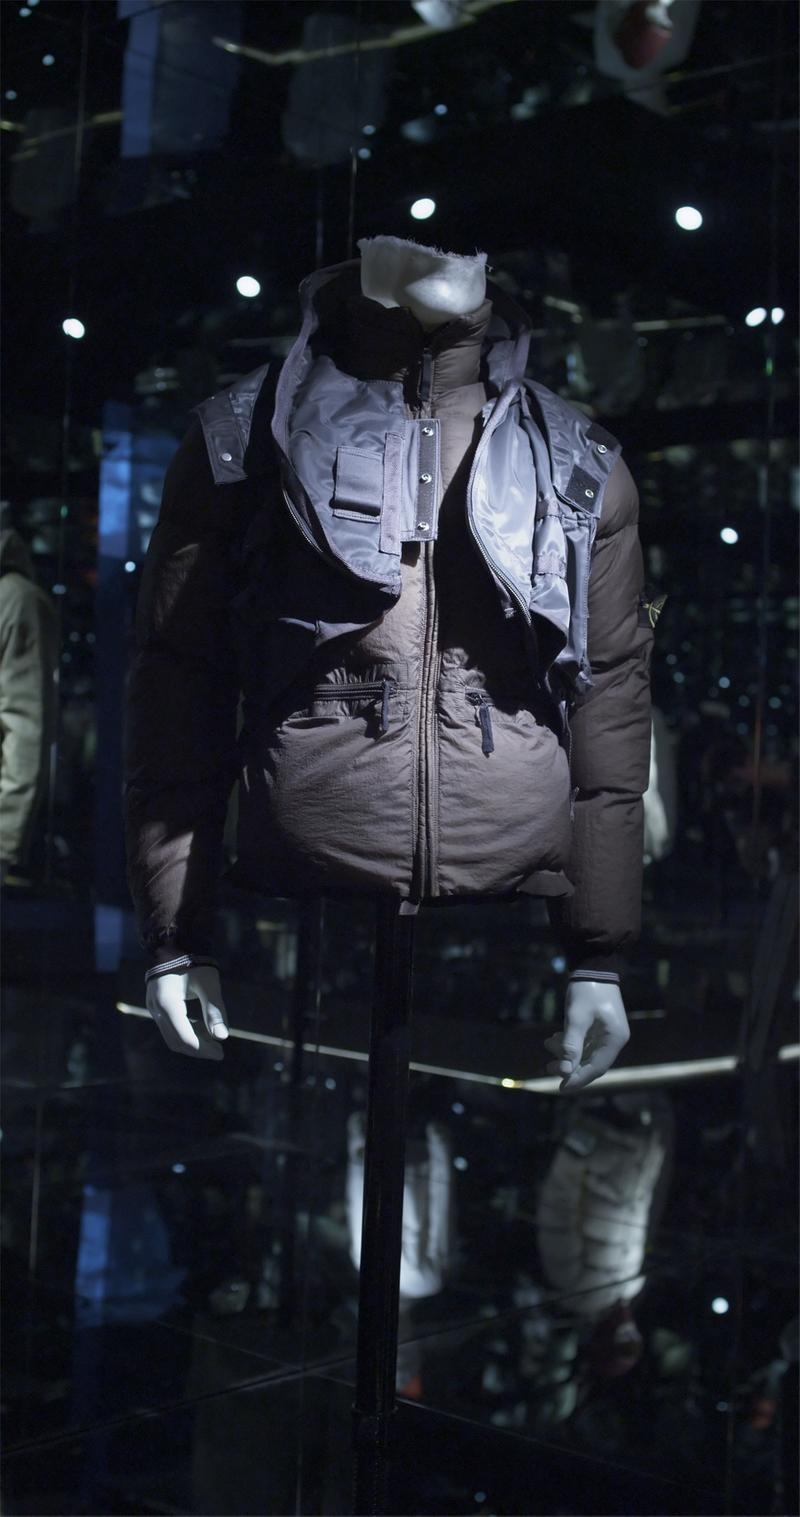 Multilayered dark zip-up puffer jacket with snap button details and pockets with zipper closure, displayed on a mannequin bust